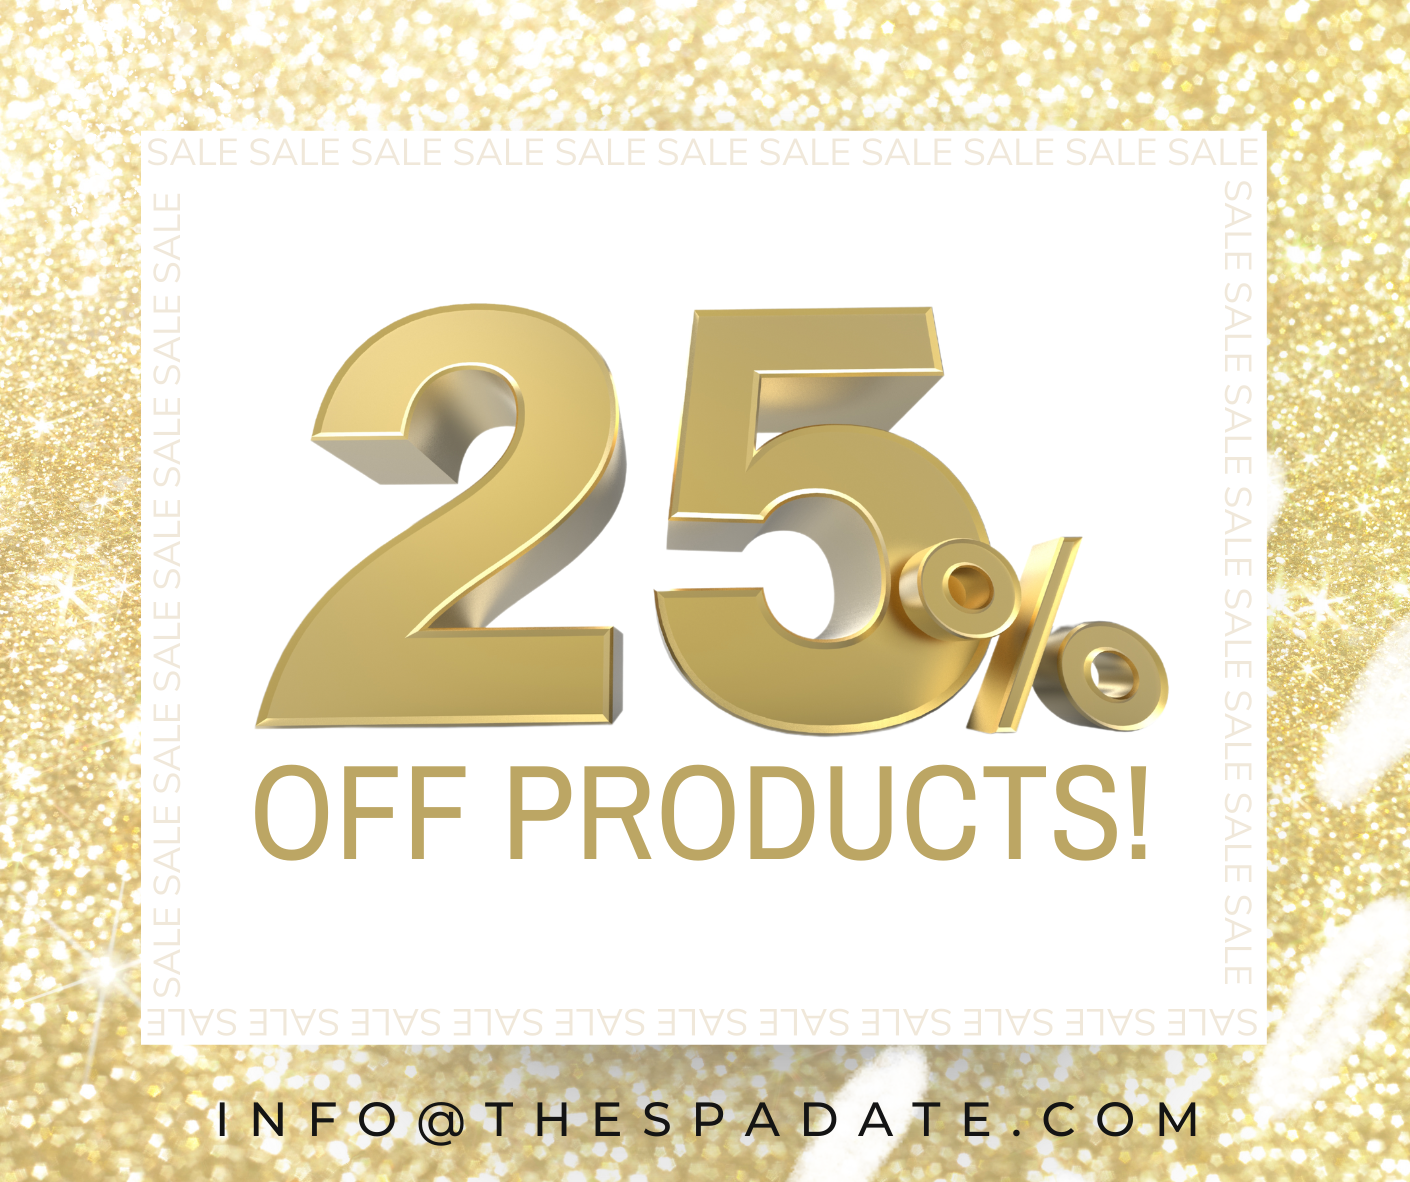 25% off products now until Dec.24th-6